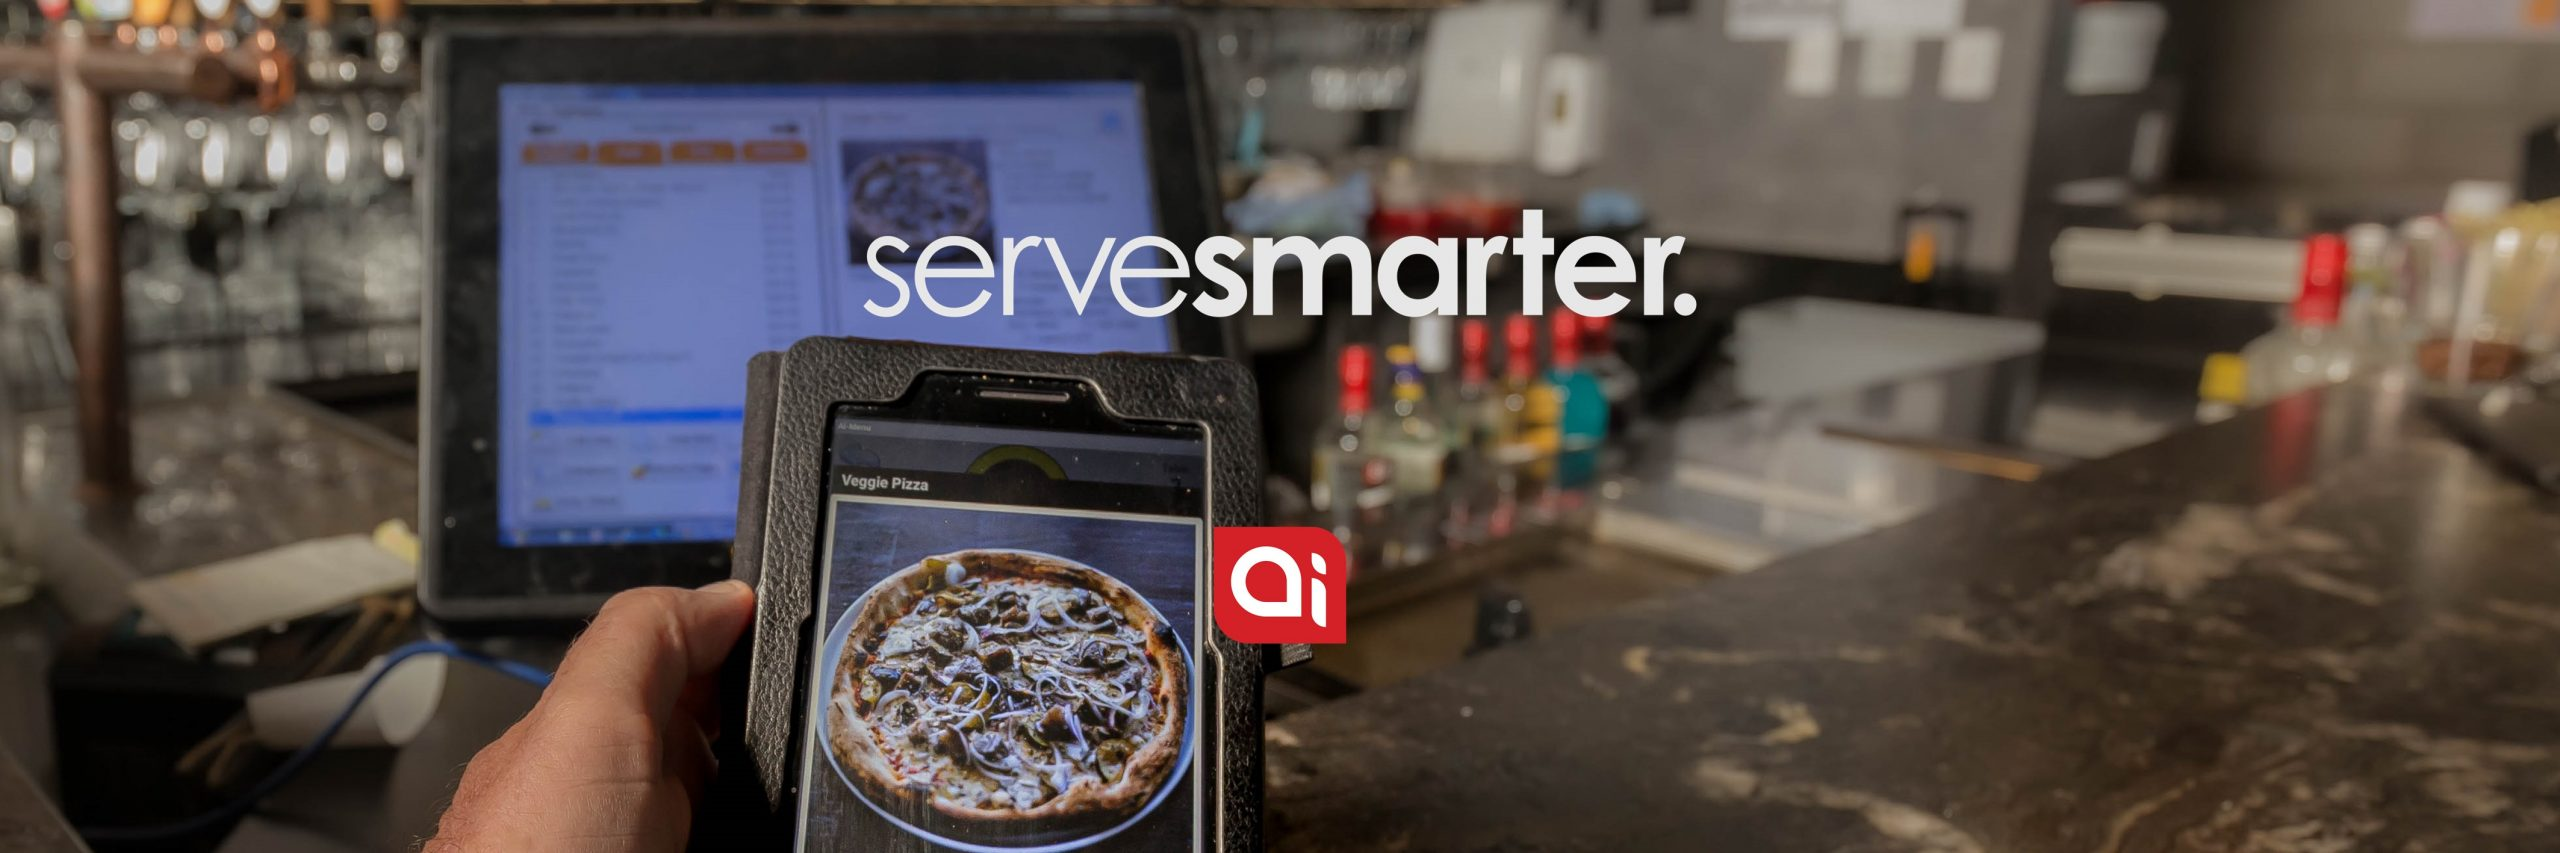 Ai-Menu is a leading innovator in hospitality technology, with solutions for online ordering, digital menus and self-ordering kiosks. #servesmarter